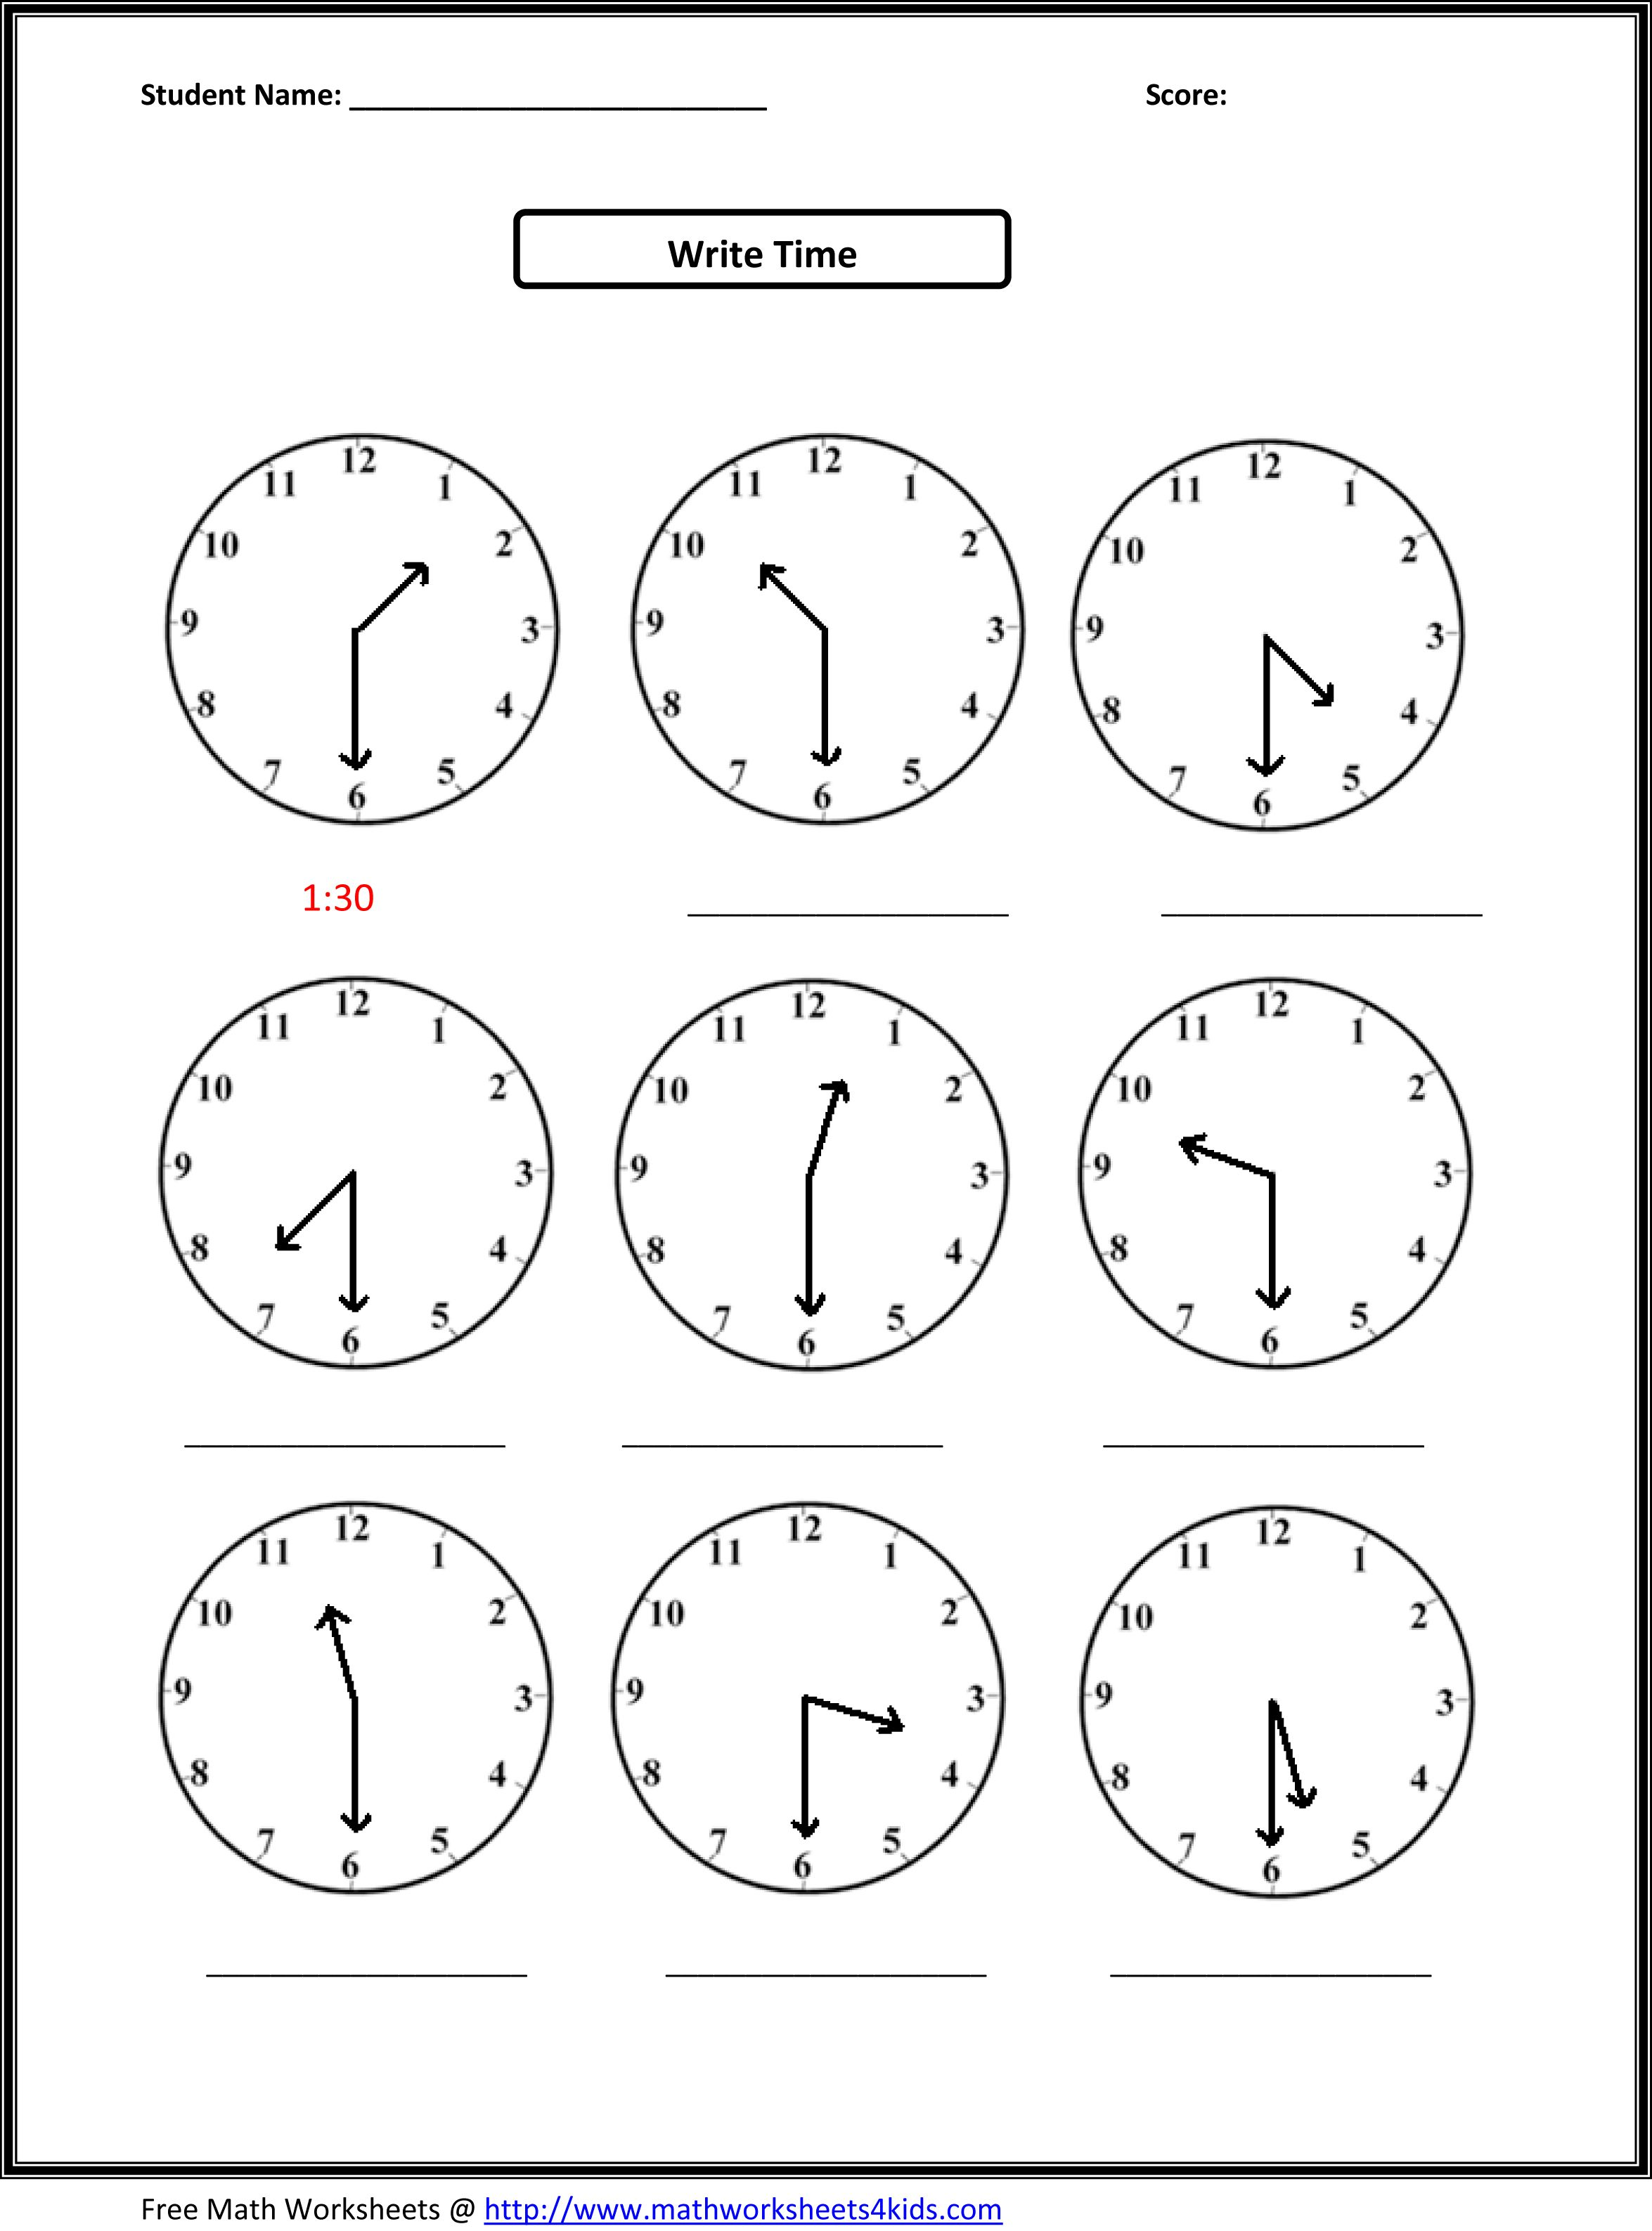 Proatmealus  Picturesque Worksheet On Time For Grade   Reocurent With Glamorous Free Printable Telling Time Worksheets Nd Grade  Reocurent With Amusing Proper Nouns Worksheet First Grade Also Grade  Multiplication Worksheets In Addition Handwriting Numbers Worksheet And Math Decimals Worksheet As Well As Superlative Adjective Worksheets Additionally English As A Foreign Language Worksheets From Reocurentcom With Proatmealus  Glamorous Worksheet On Time For Grade   Reocurent With Amusing Free Printable Telling Time Worksheets Nd Grade  Reocurent And Picturesque Proper Nouns Worksheet First Grade Also Grade  Multiplication Worksheets In Addition Handwriting Numbers Worksheet From Reocurentcom